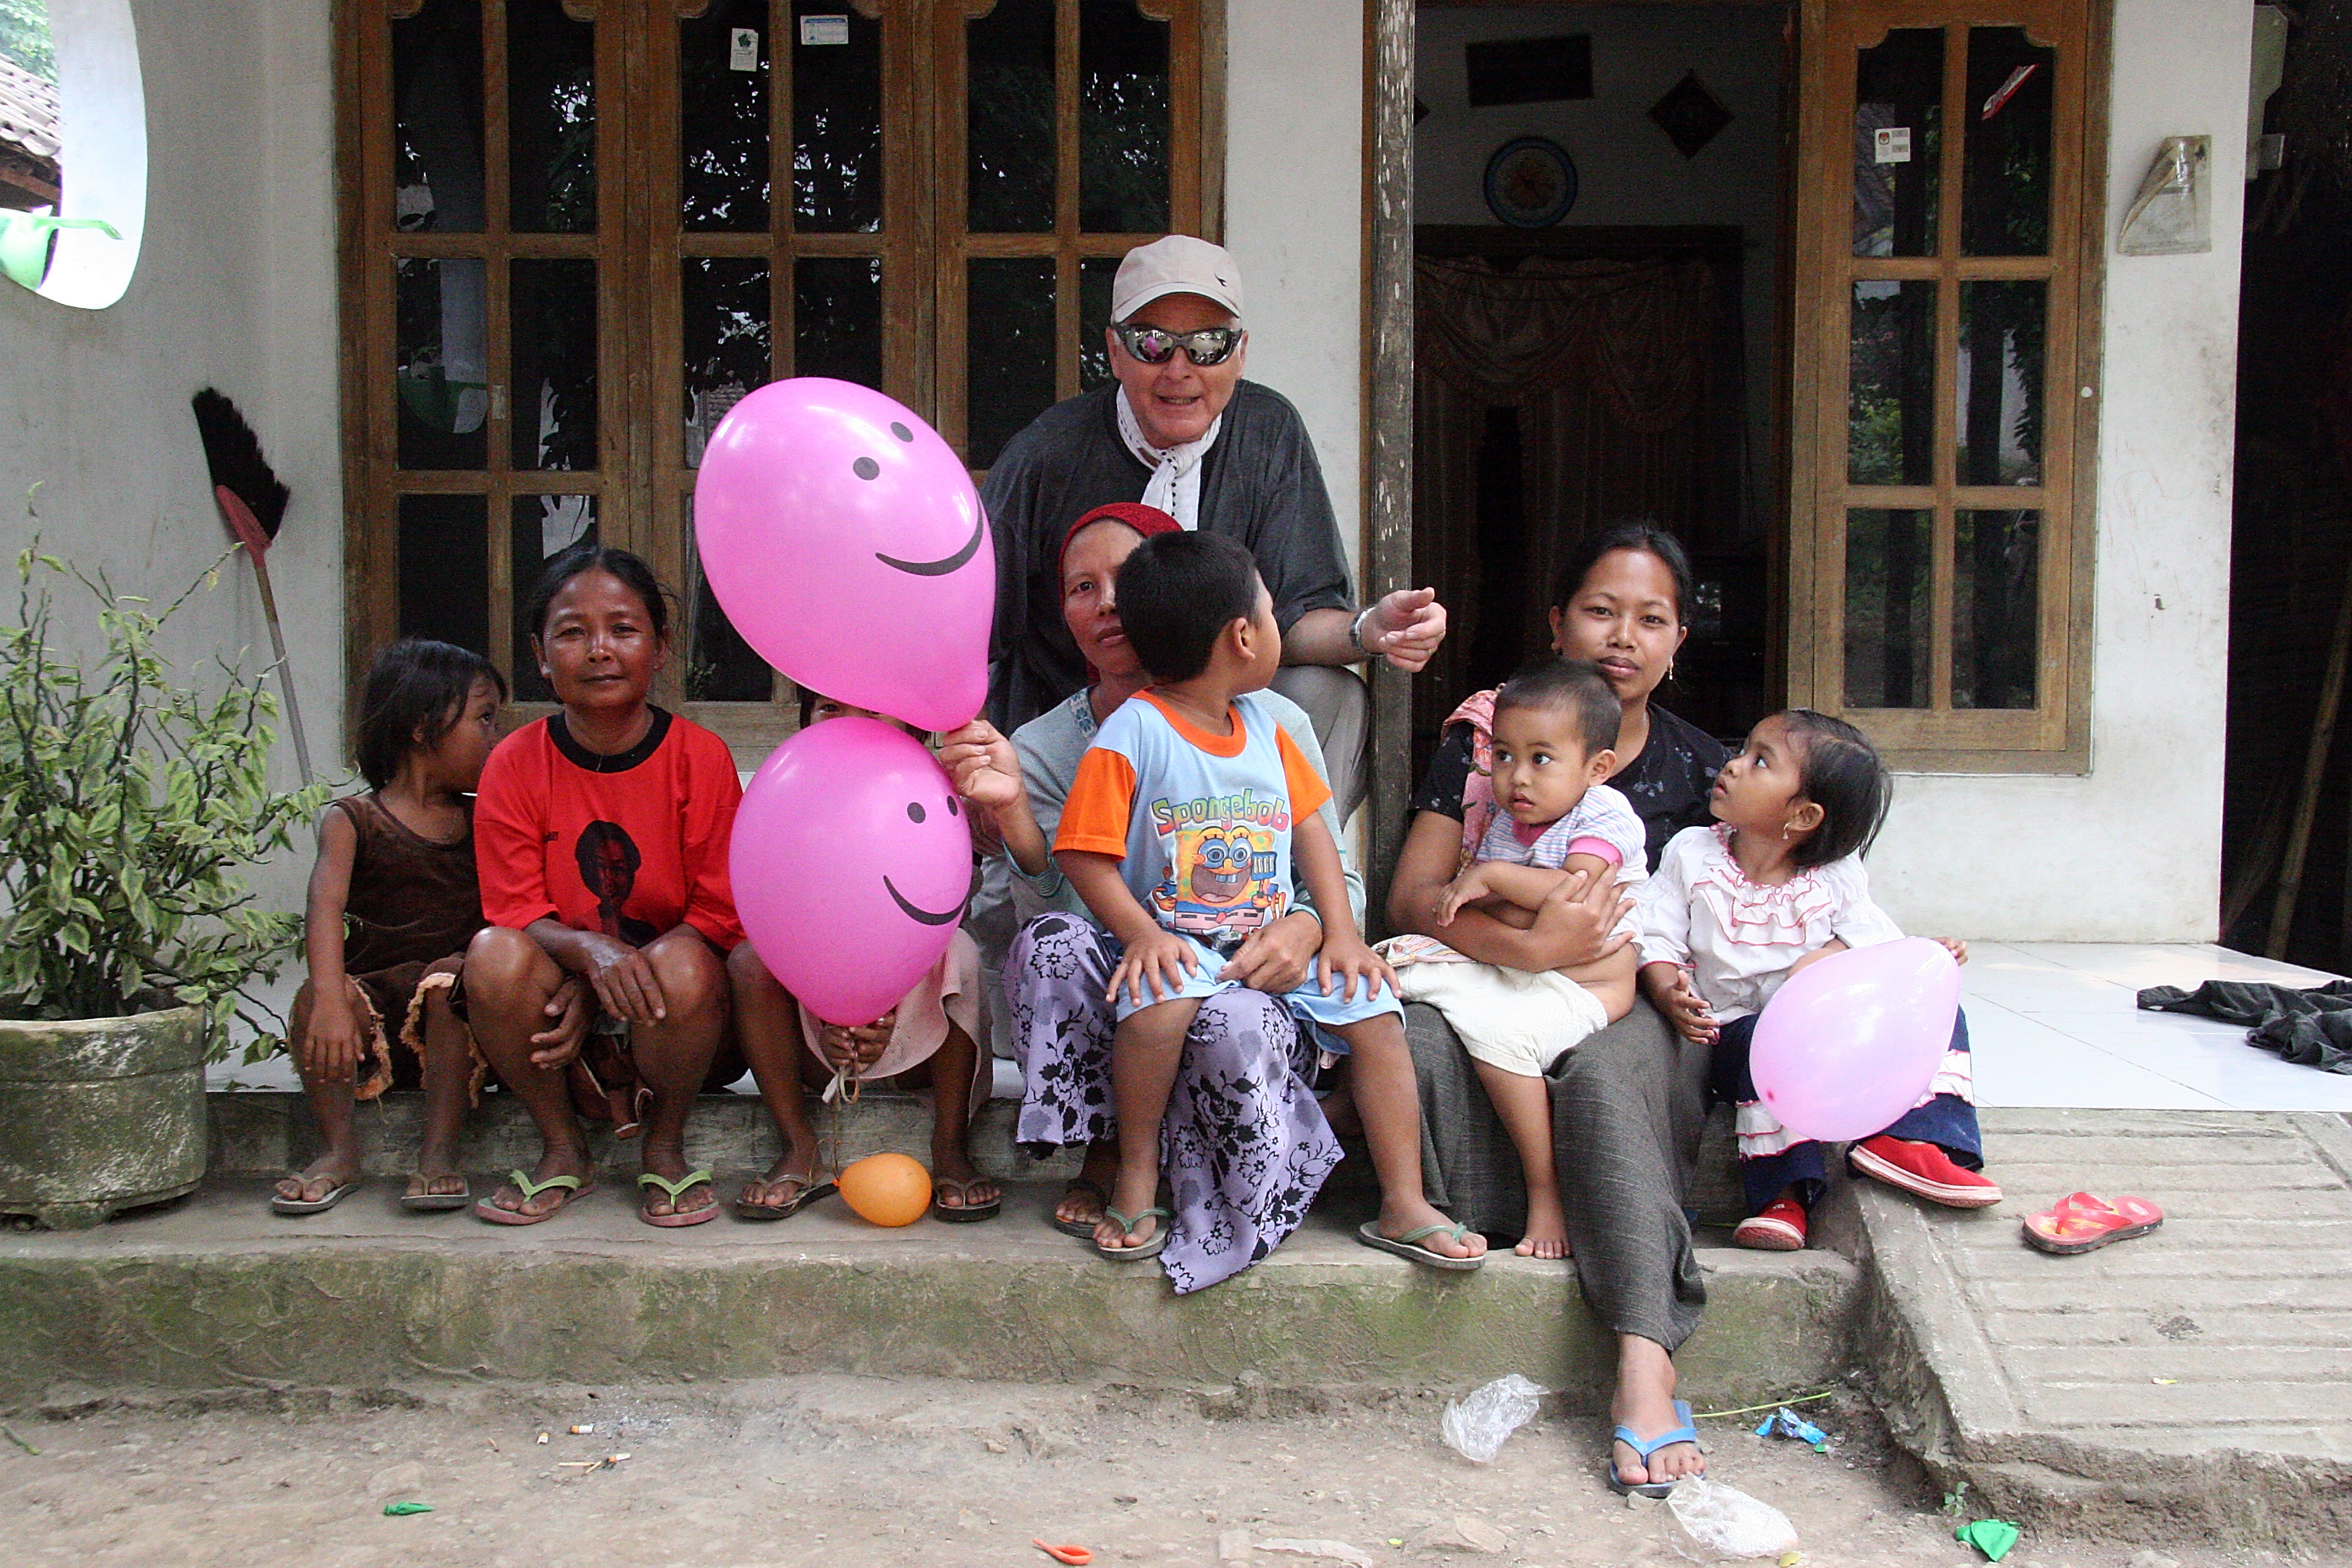 Ruedi and the village children, Java Indonesia.jpg - Indonesia Java. Ruedi and the village children